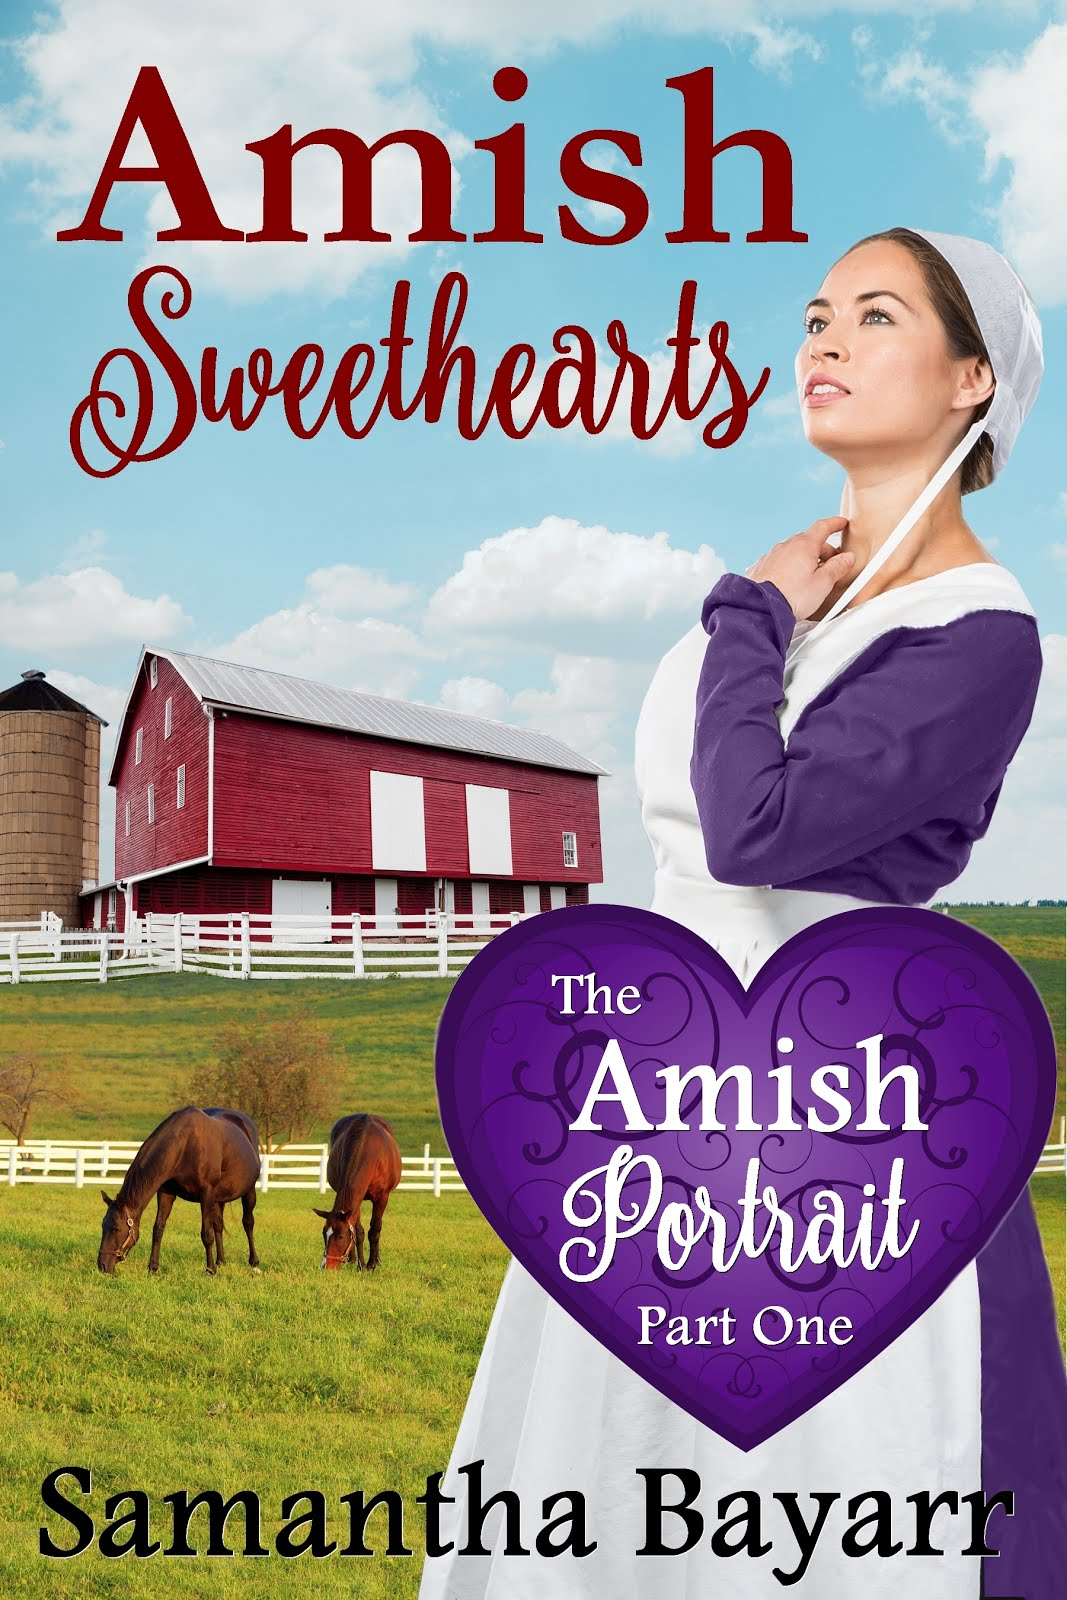 The Amish Portrait